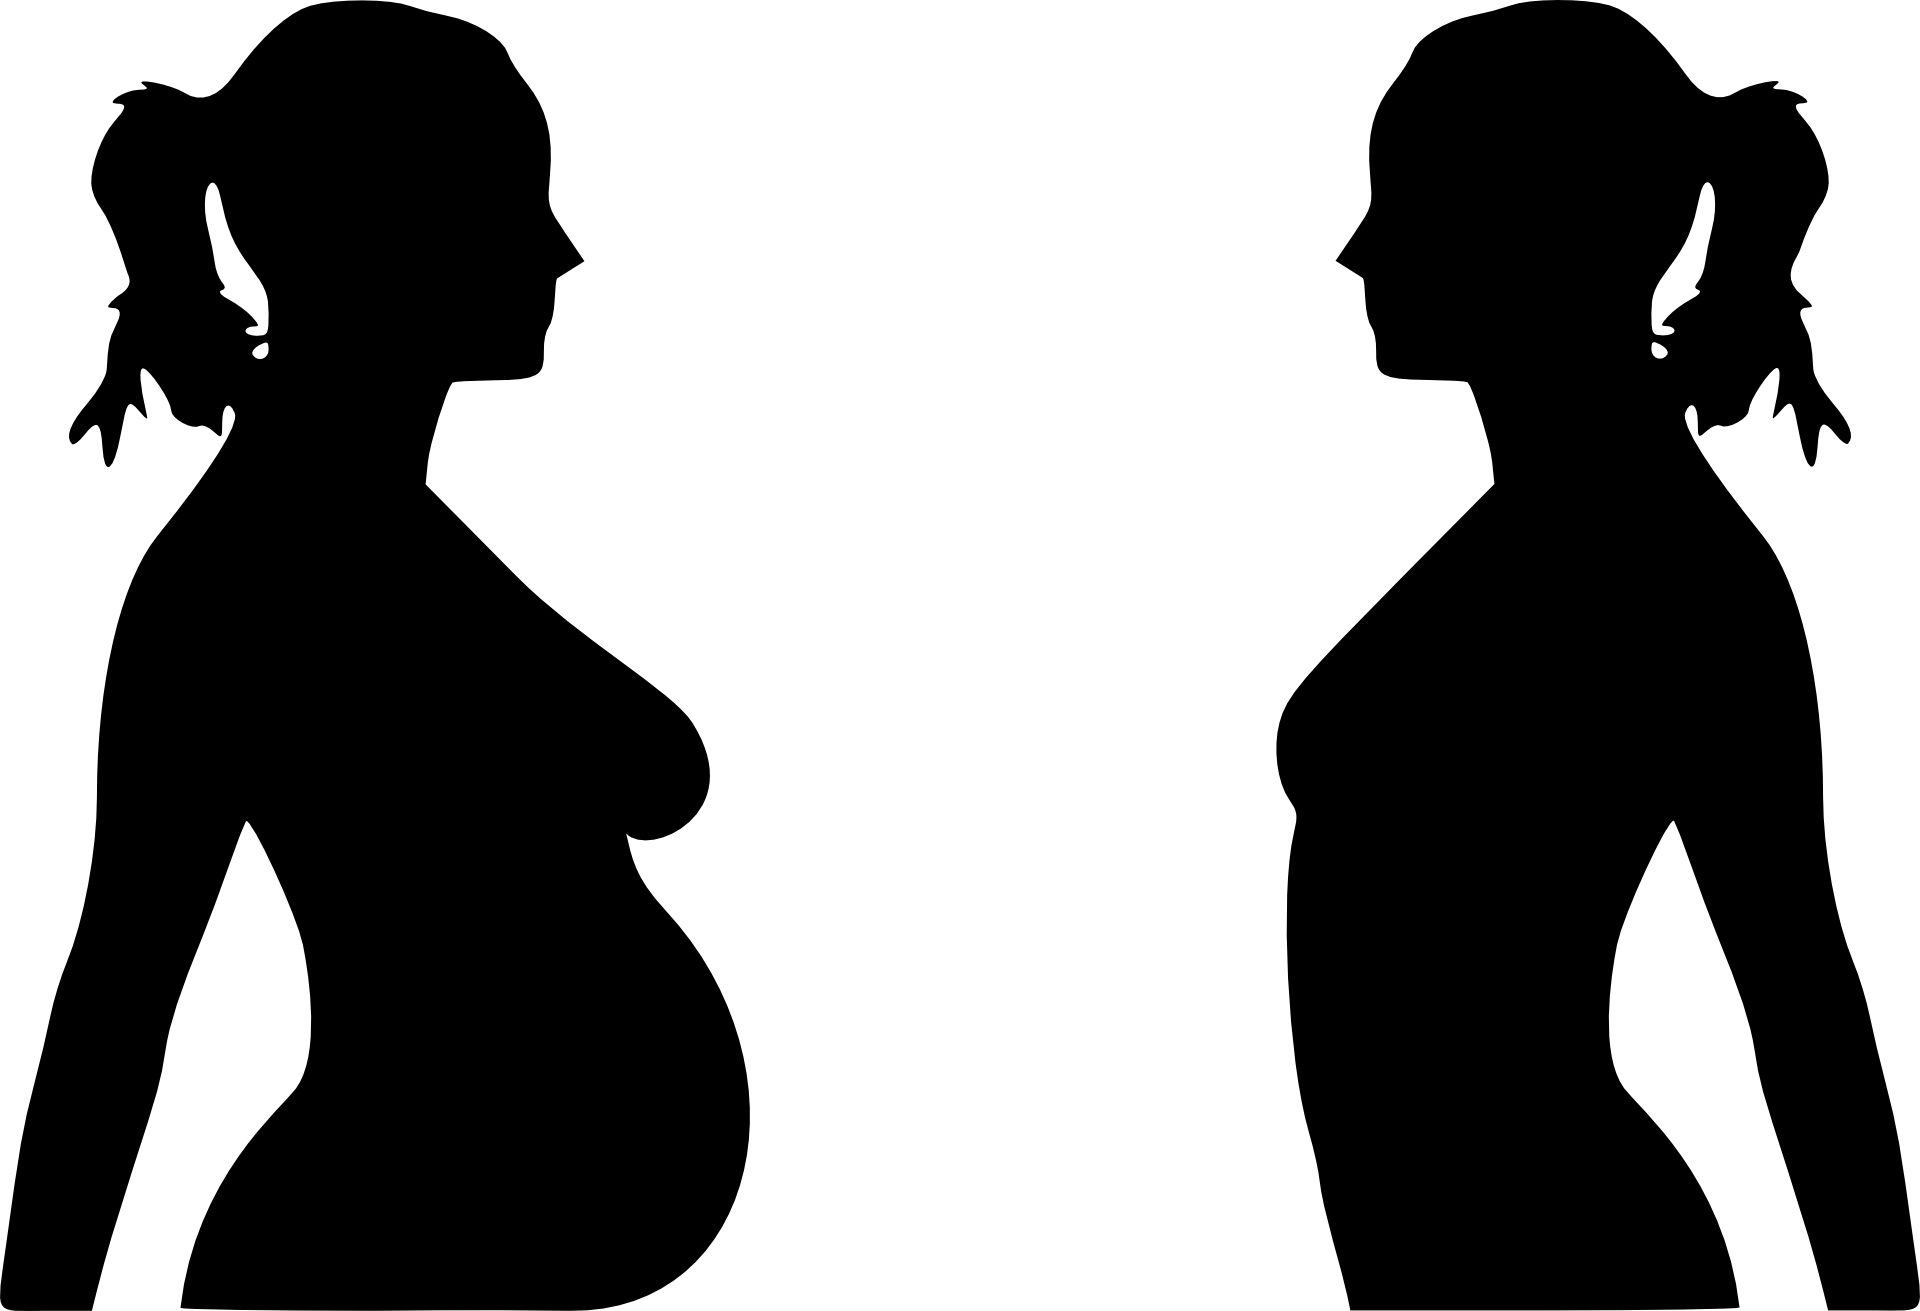 Free Silhouette Of Pregnant Woman Clipart, Download Free Clip Art.